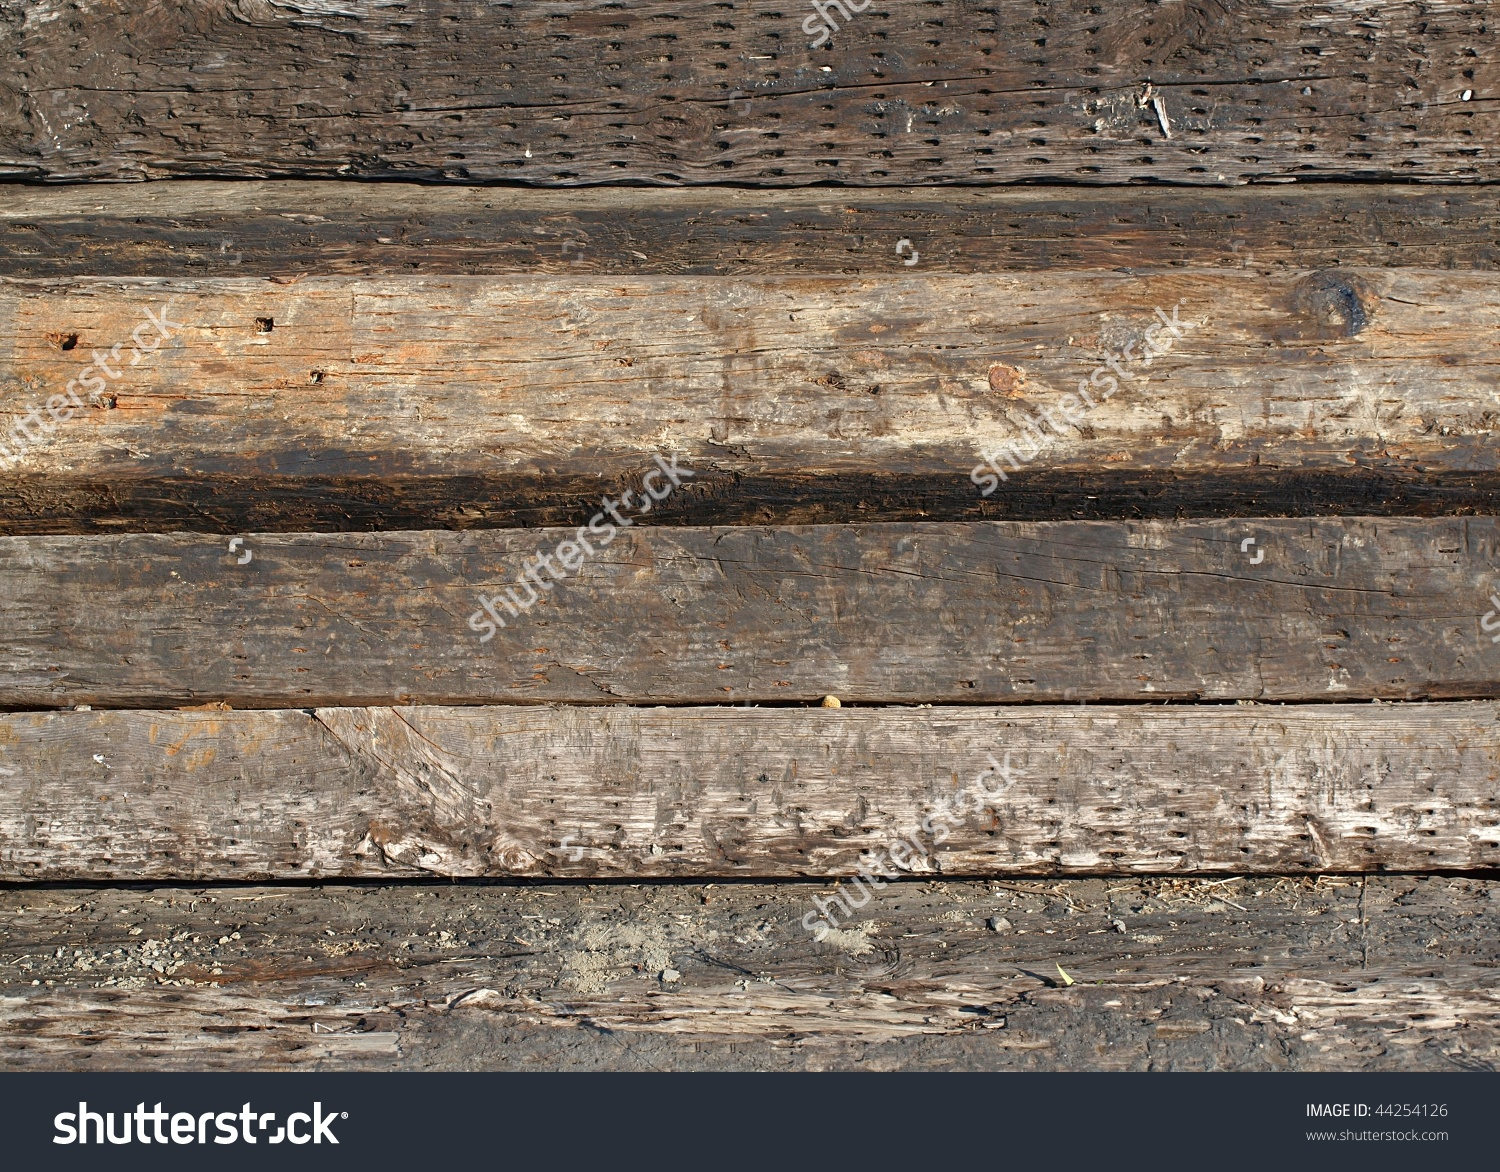 Old Wooden Railroad Ties Sleepers They Stock Photo 44254126.